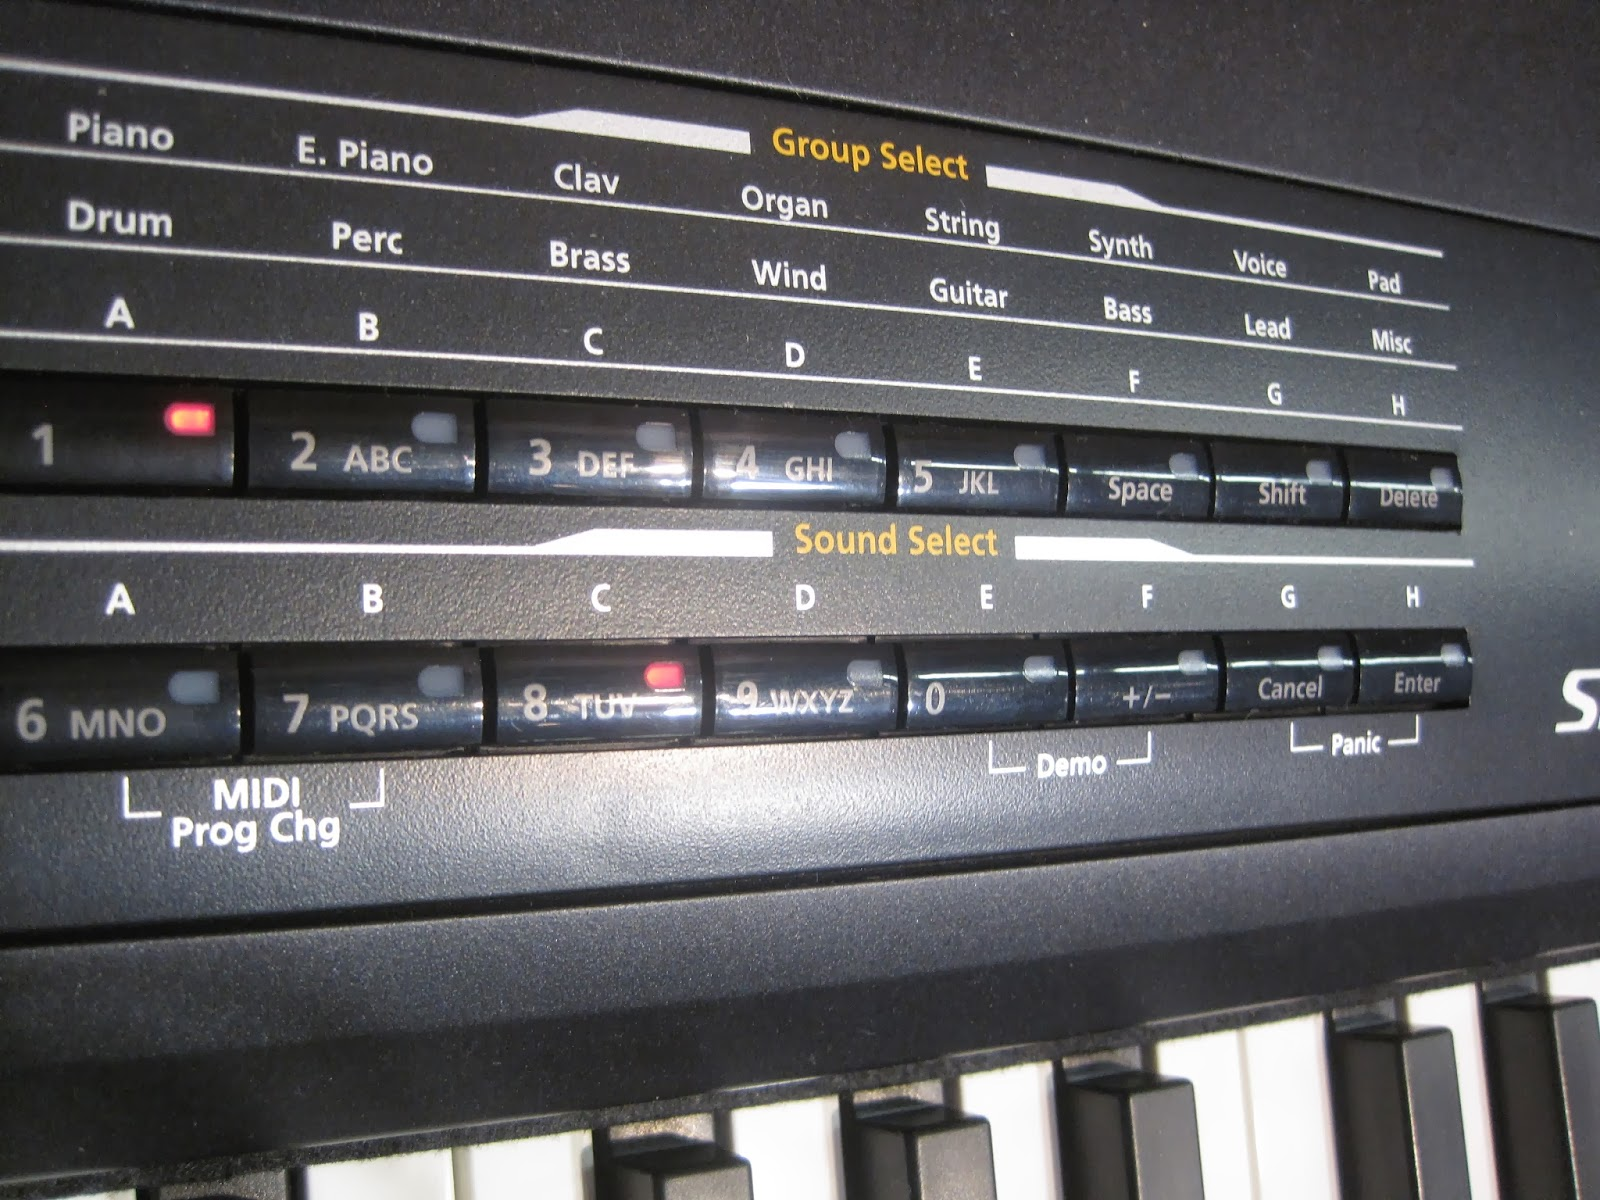 Kurzweil SPS4-8 digital piano